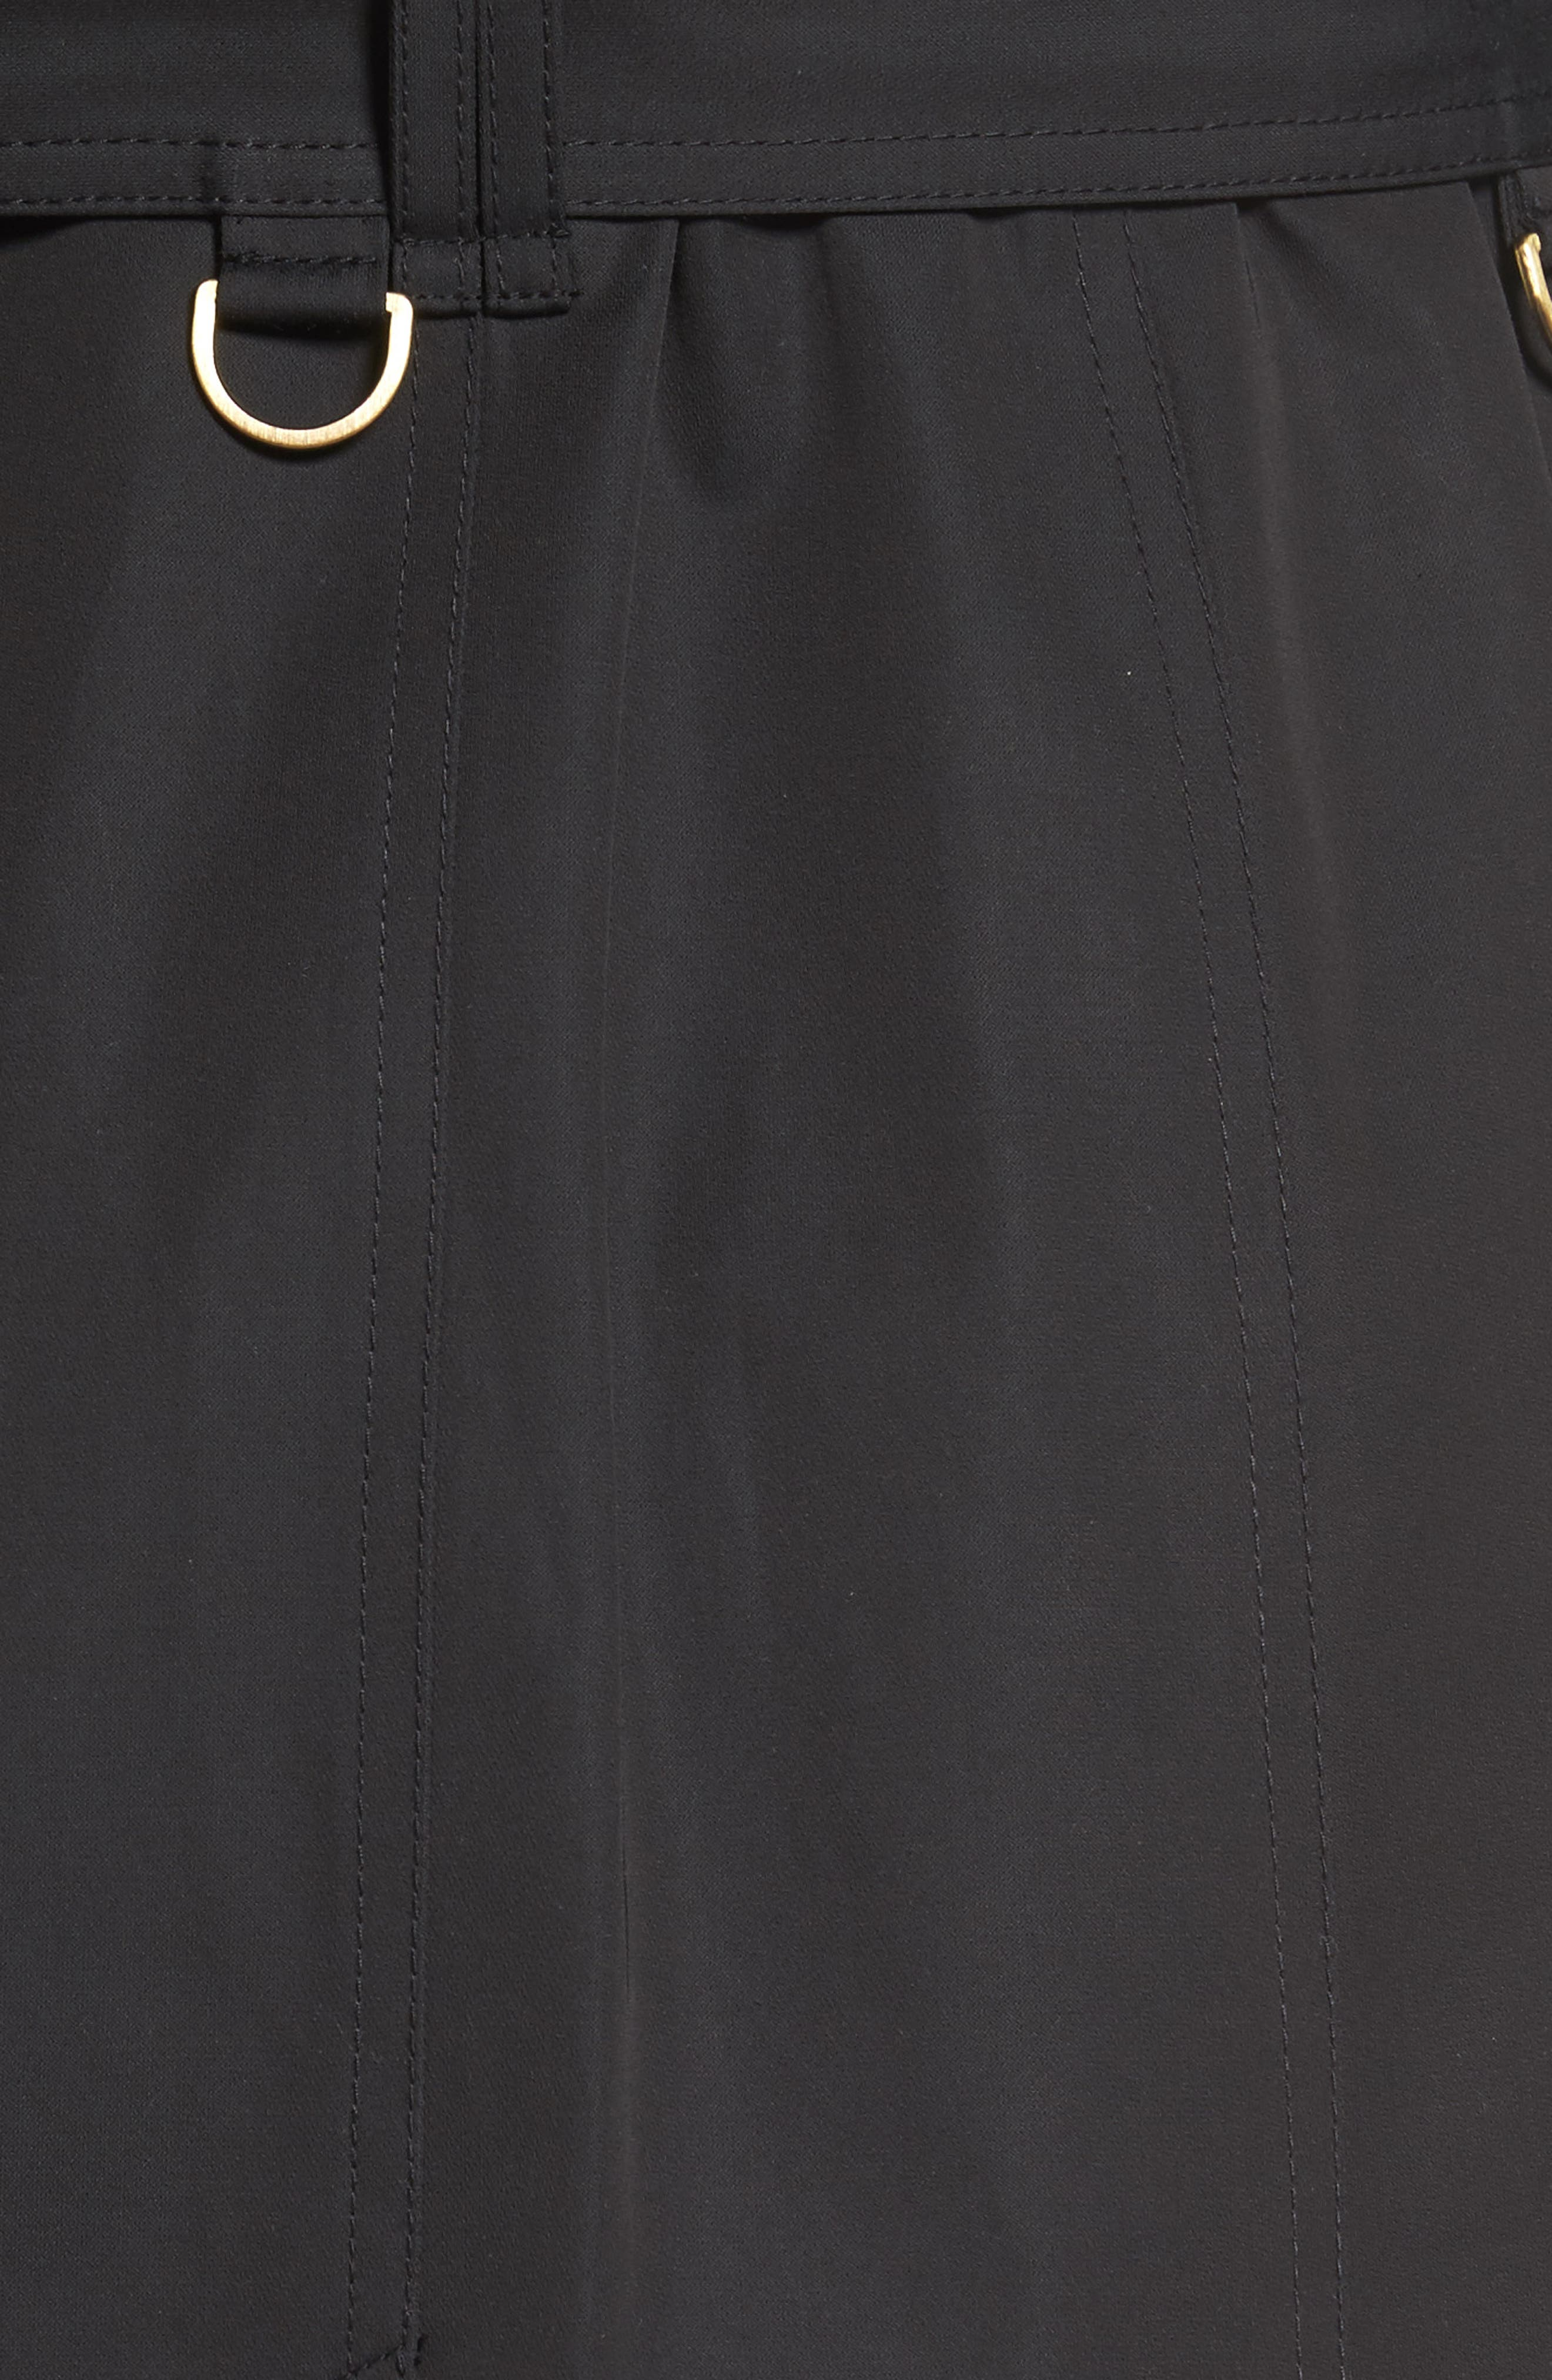 Hooded Single Breasted Long Trench Coat,                             Alternate thumbnail 6, color,